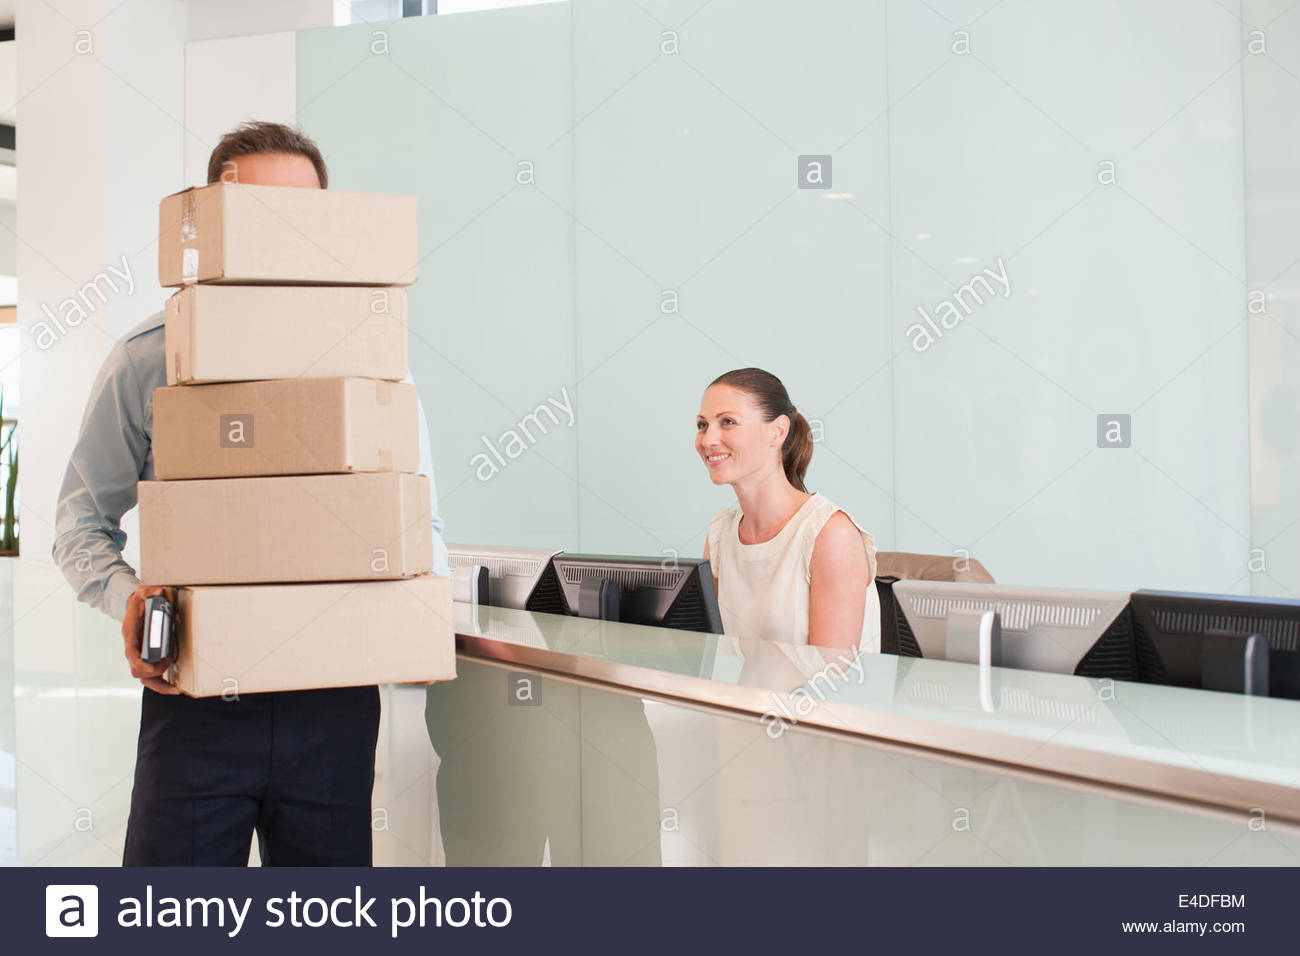 Delivery man holding stack of boxes in reception area - Stock Image